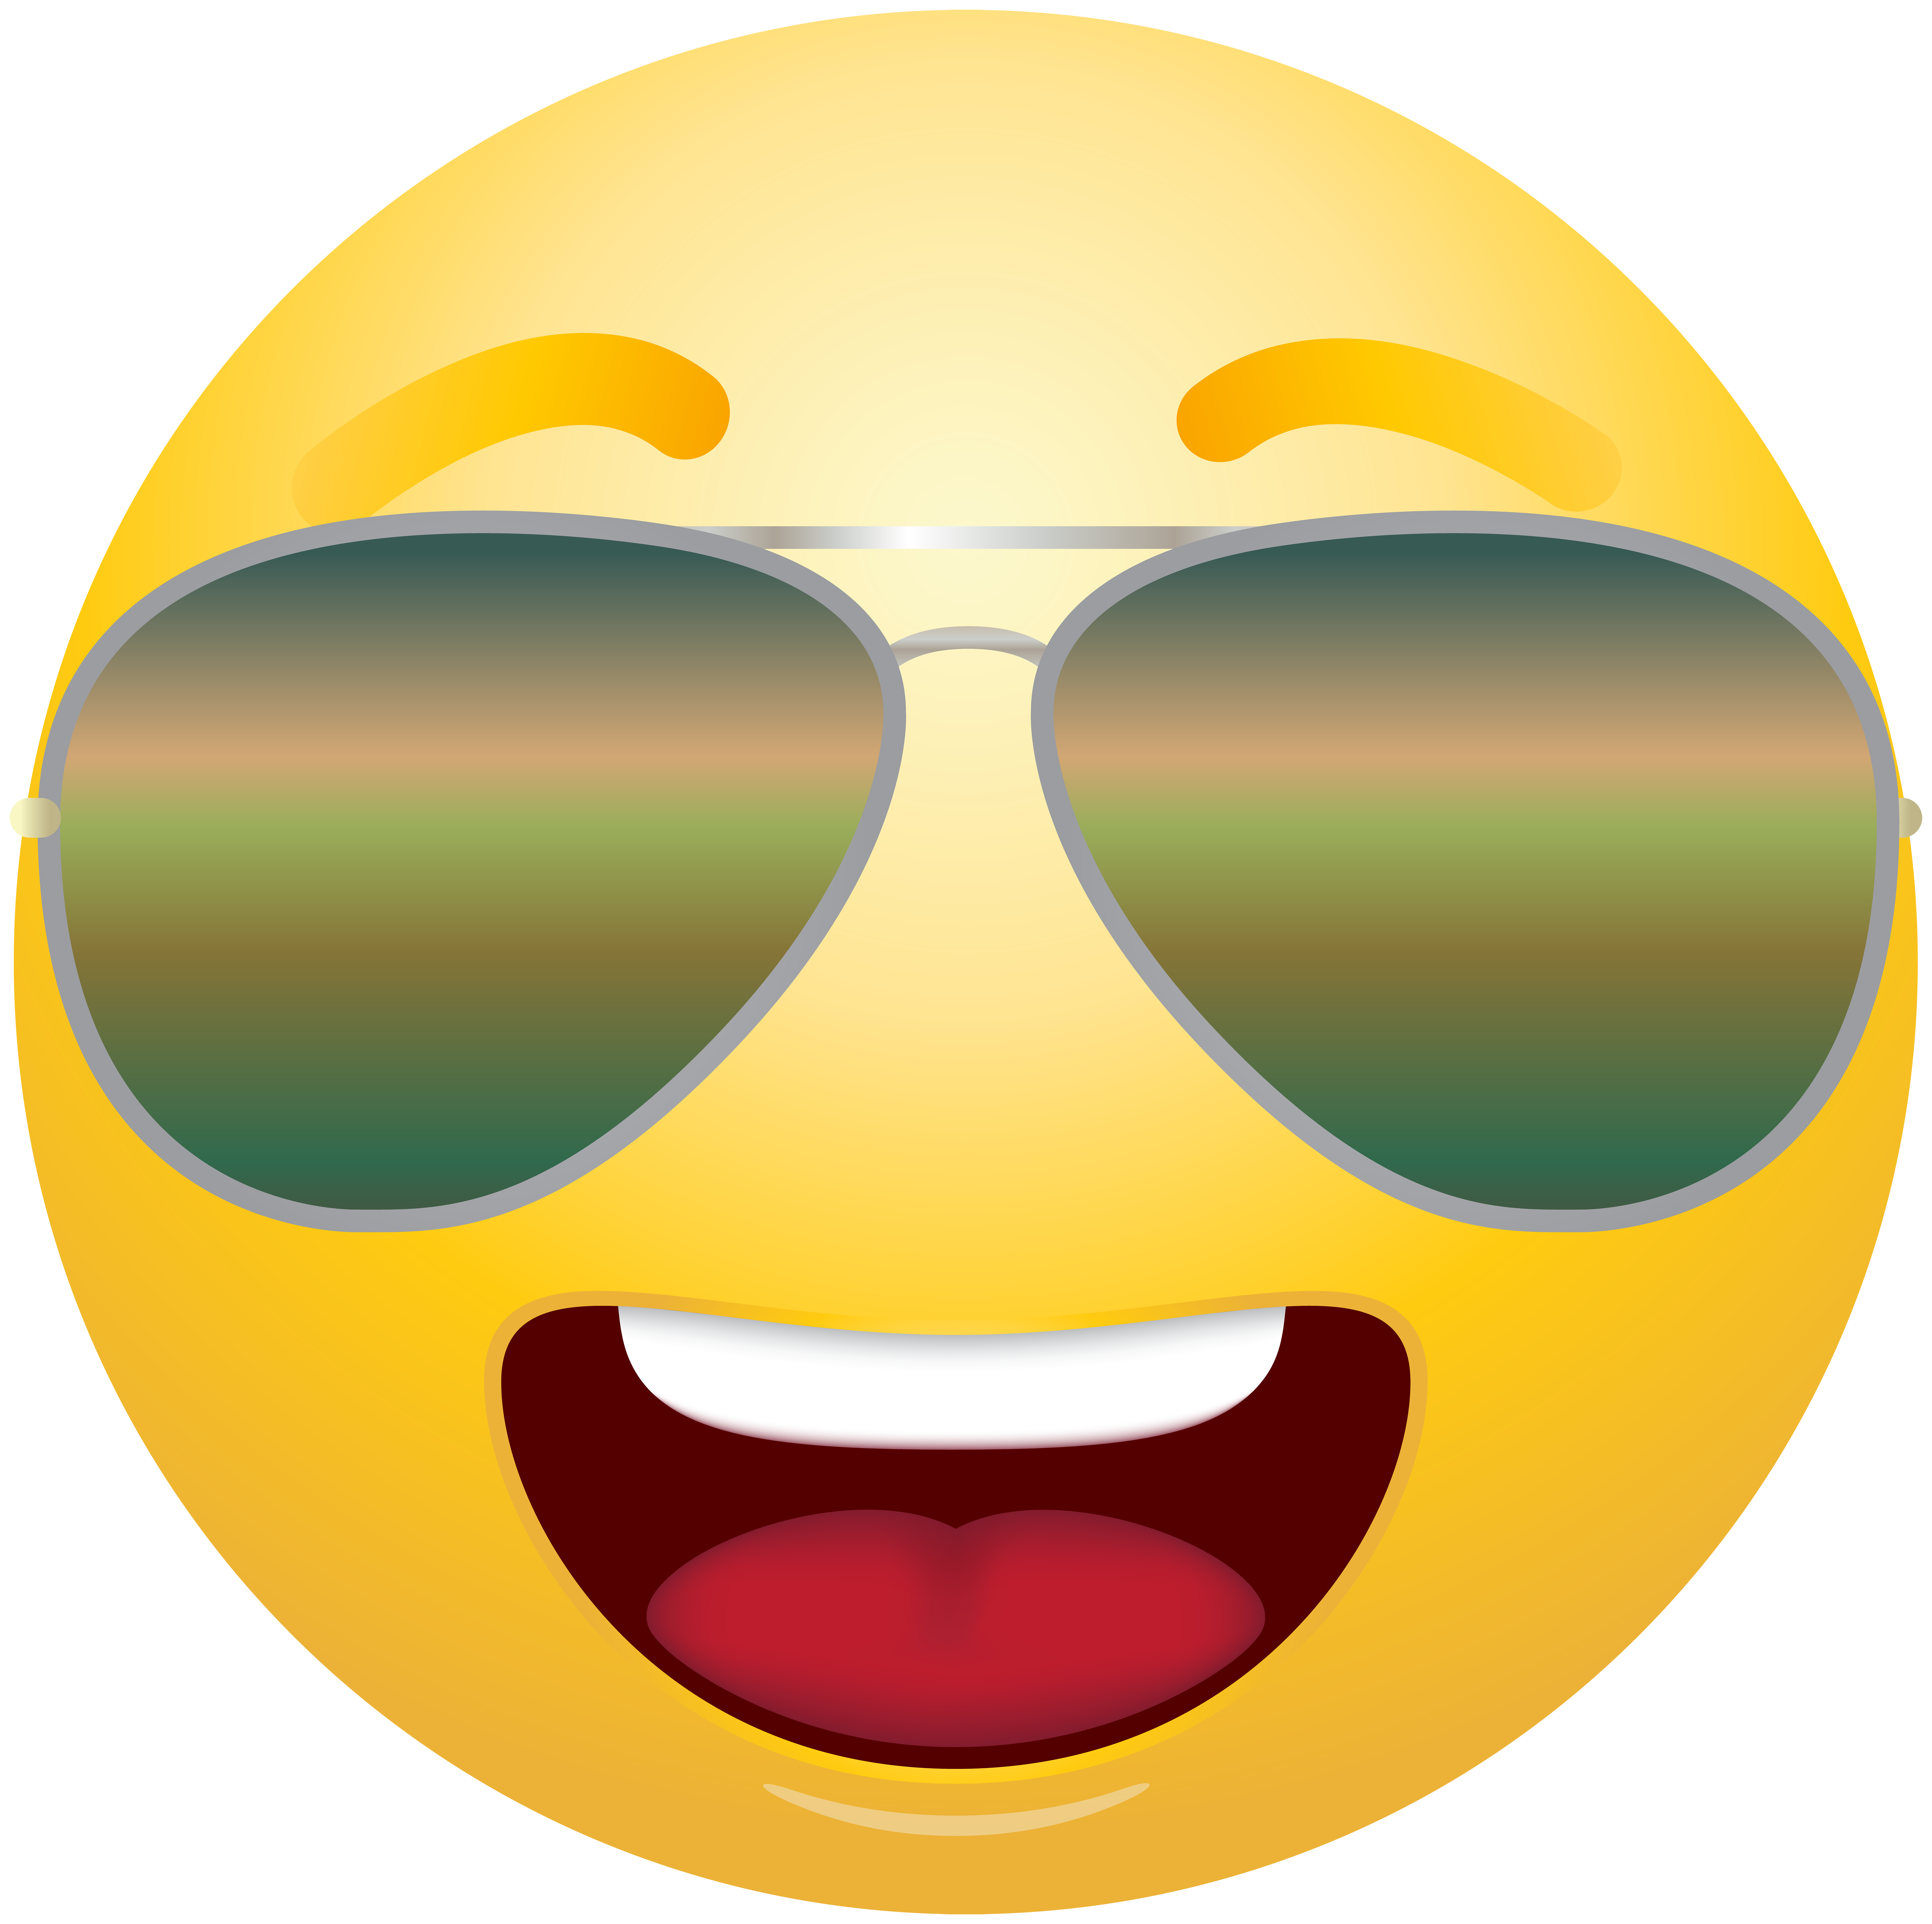 Clipart sun glasses image freeuse library Emoticon with Sunglasses PNG Clip Art - Best WEB Clipart image freeuse library